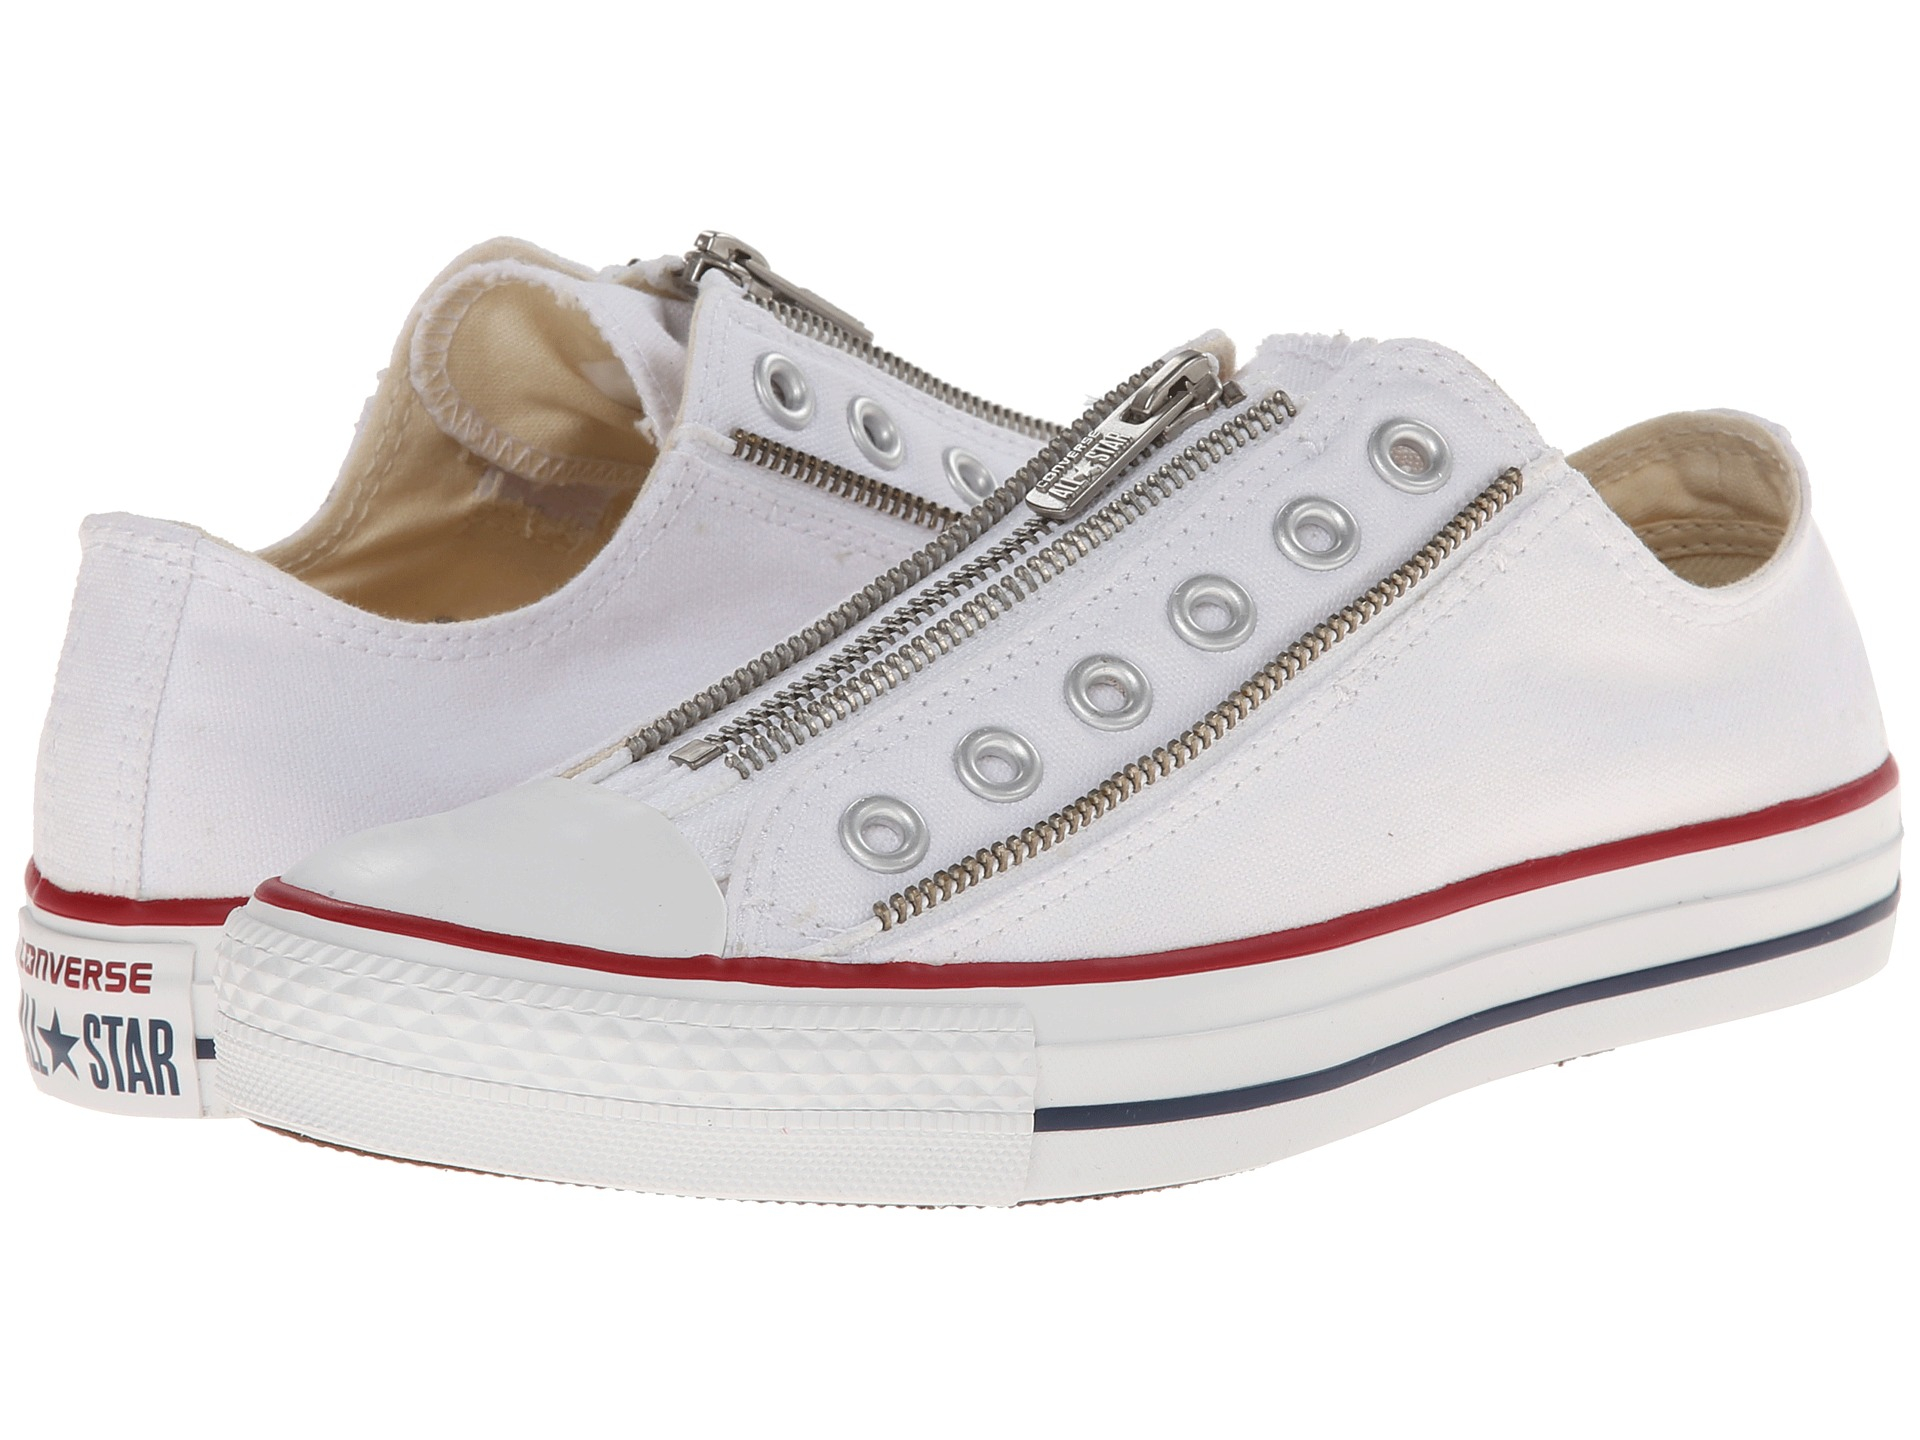 d98ca134413a denmark converse zipper shoes dae95 7b2d5